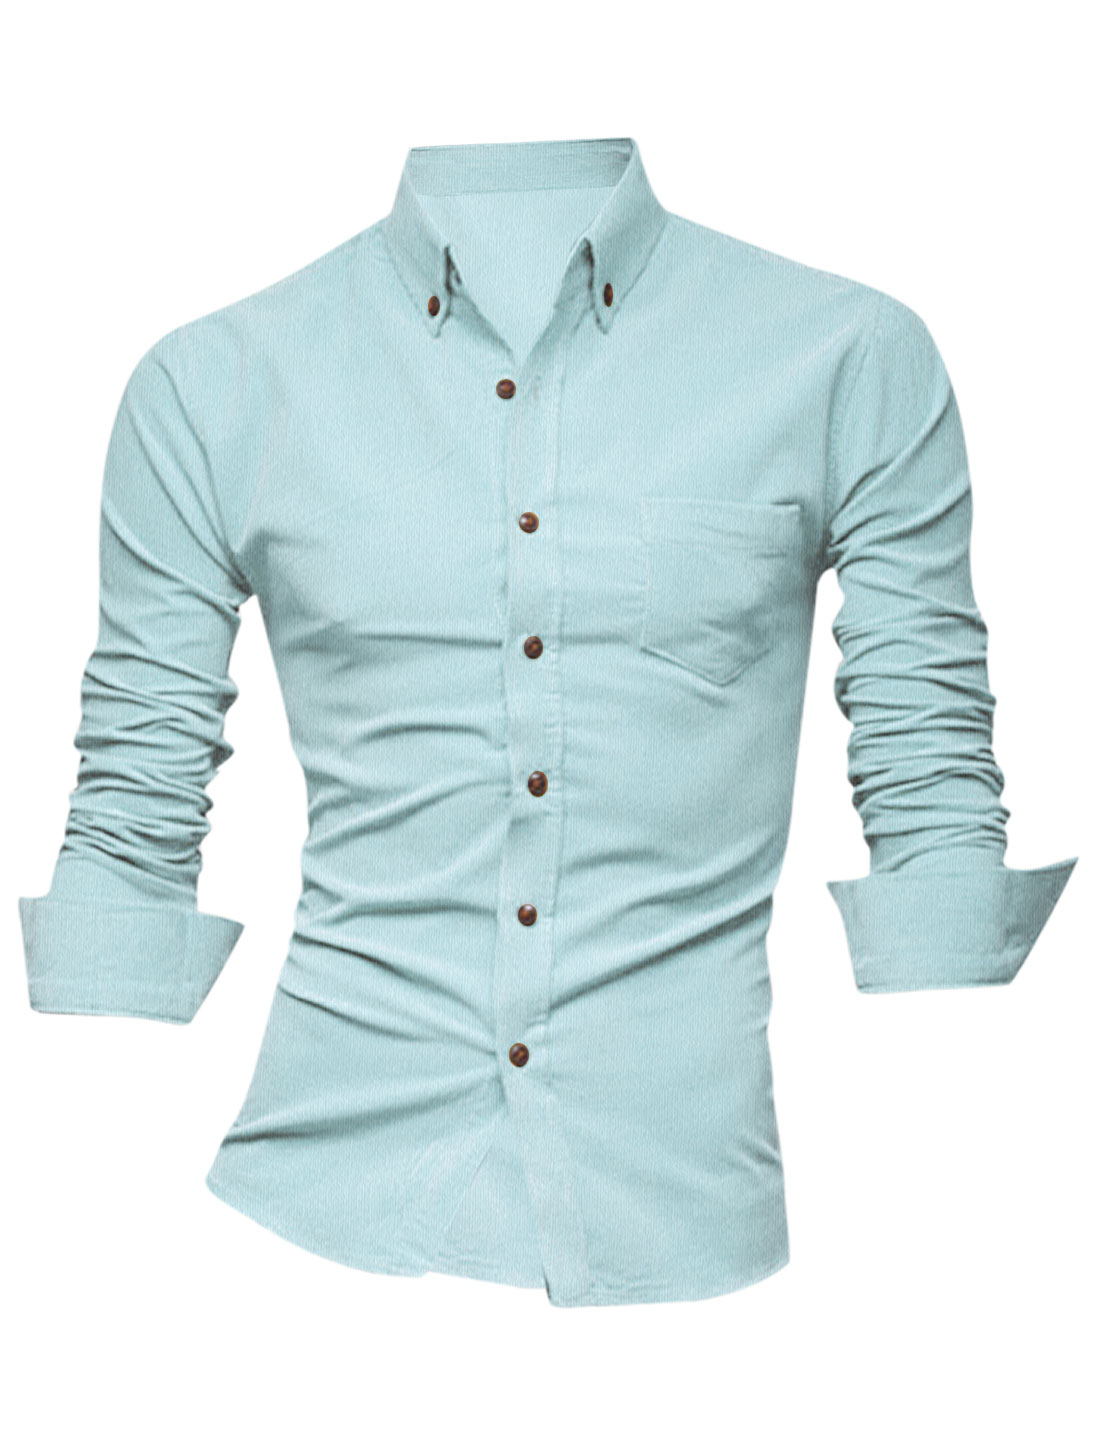 Men Multi Buttons Closure Cuff Round Hem Casual Shirt Light Blue M